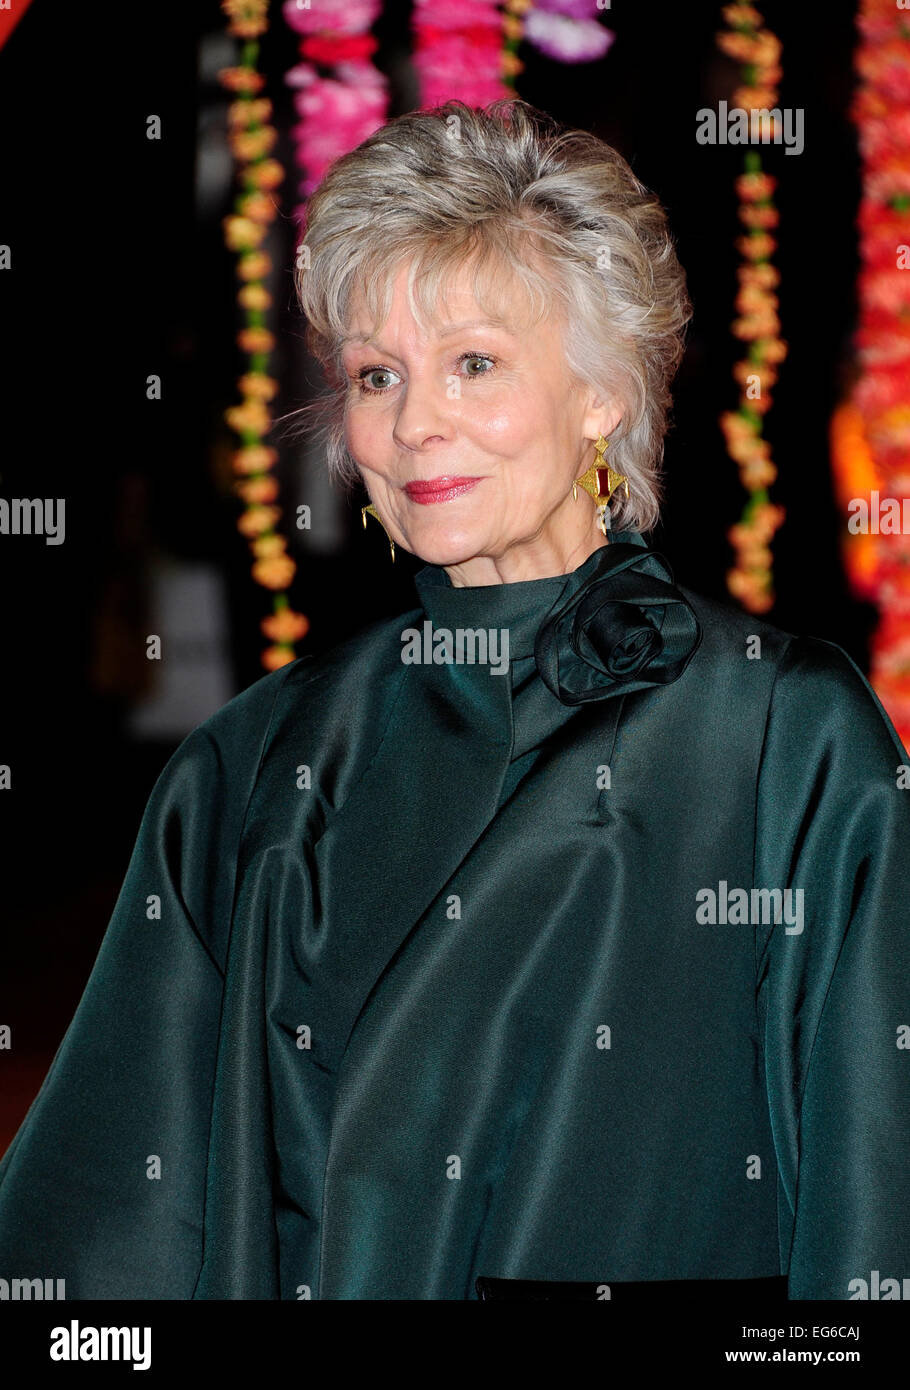 Communication on this topic: Sabrina (actress), diana-hardcastle/